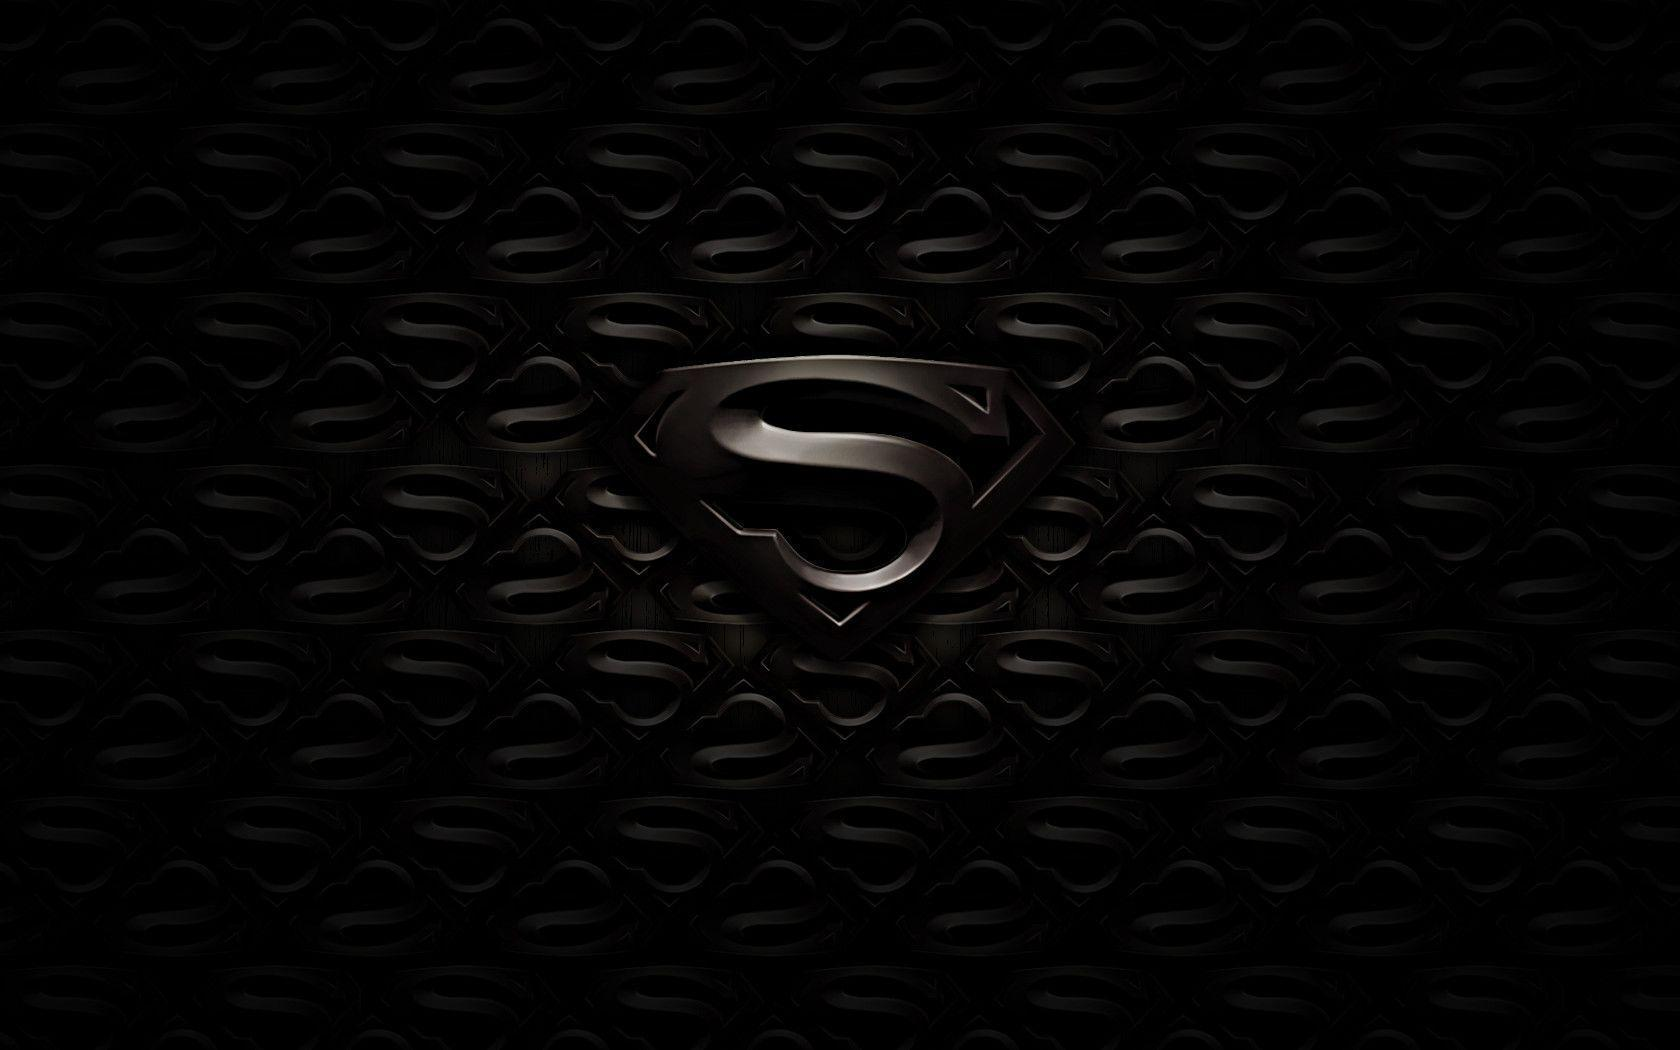 Superman Logo Black And White HD Wallpapers